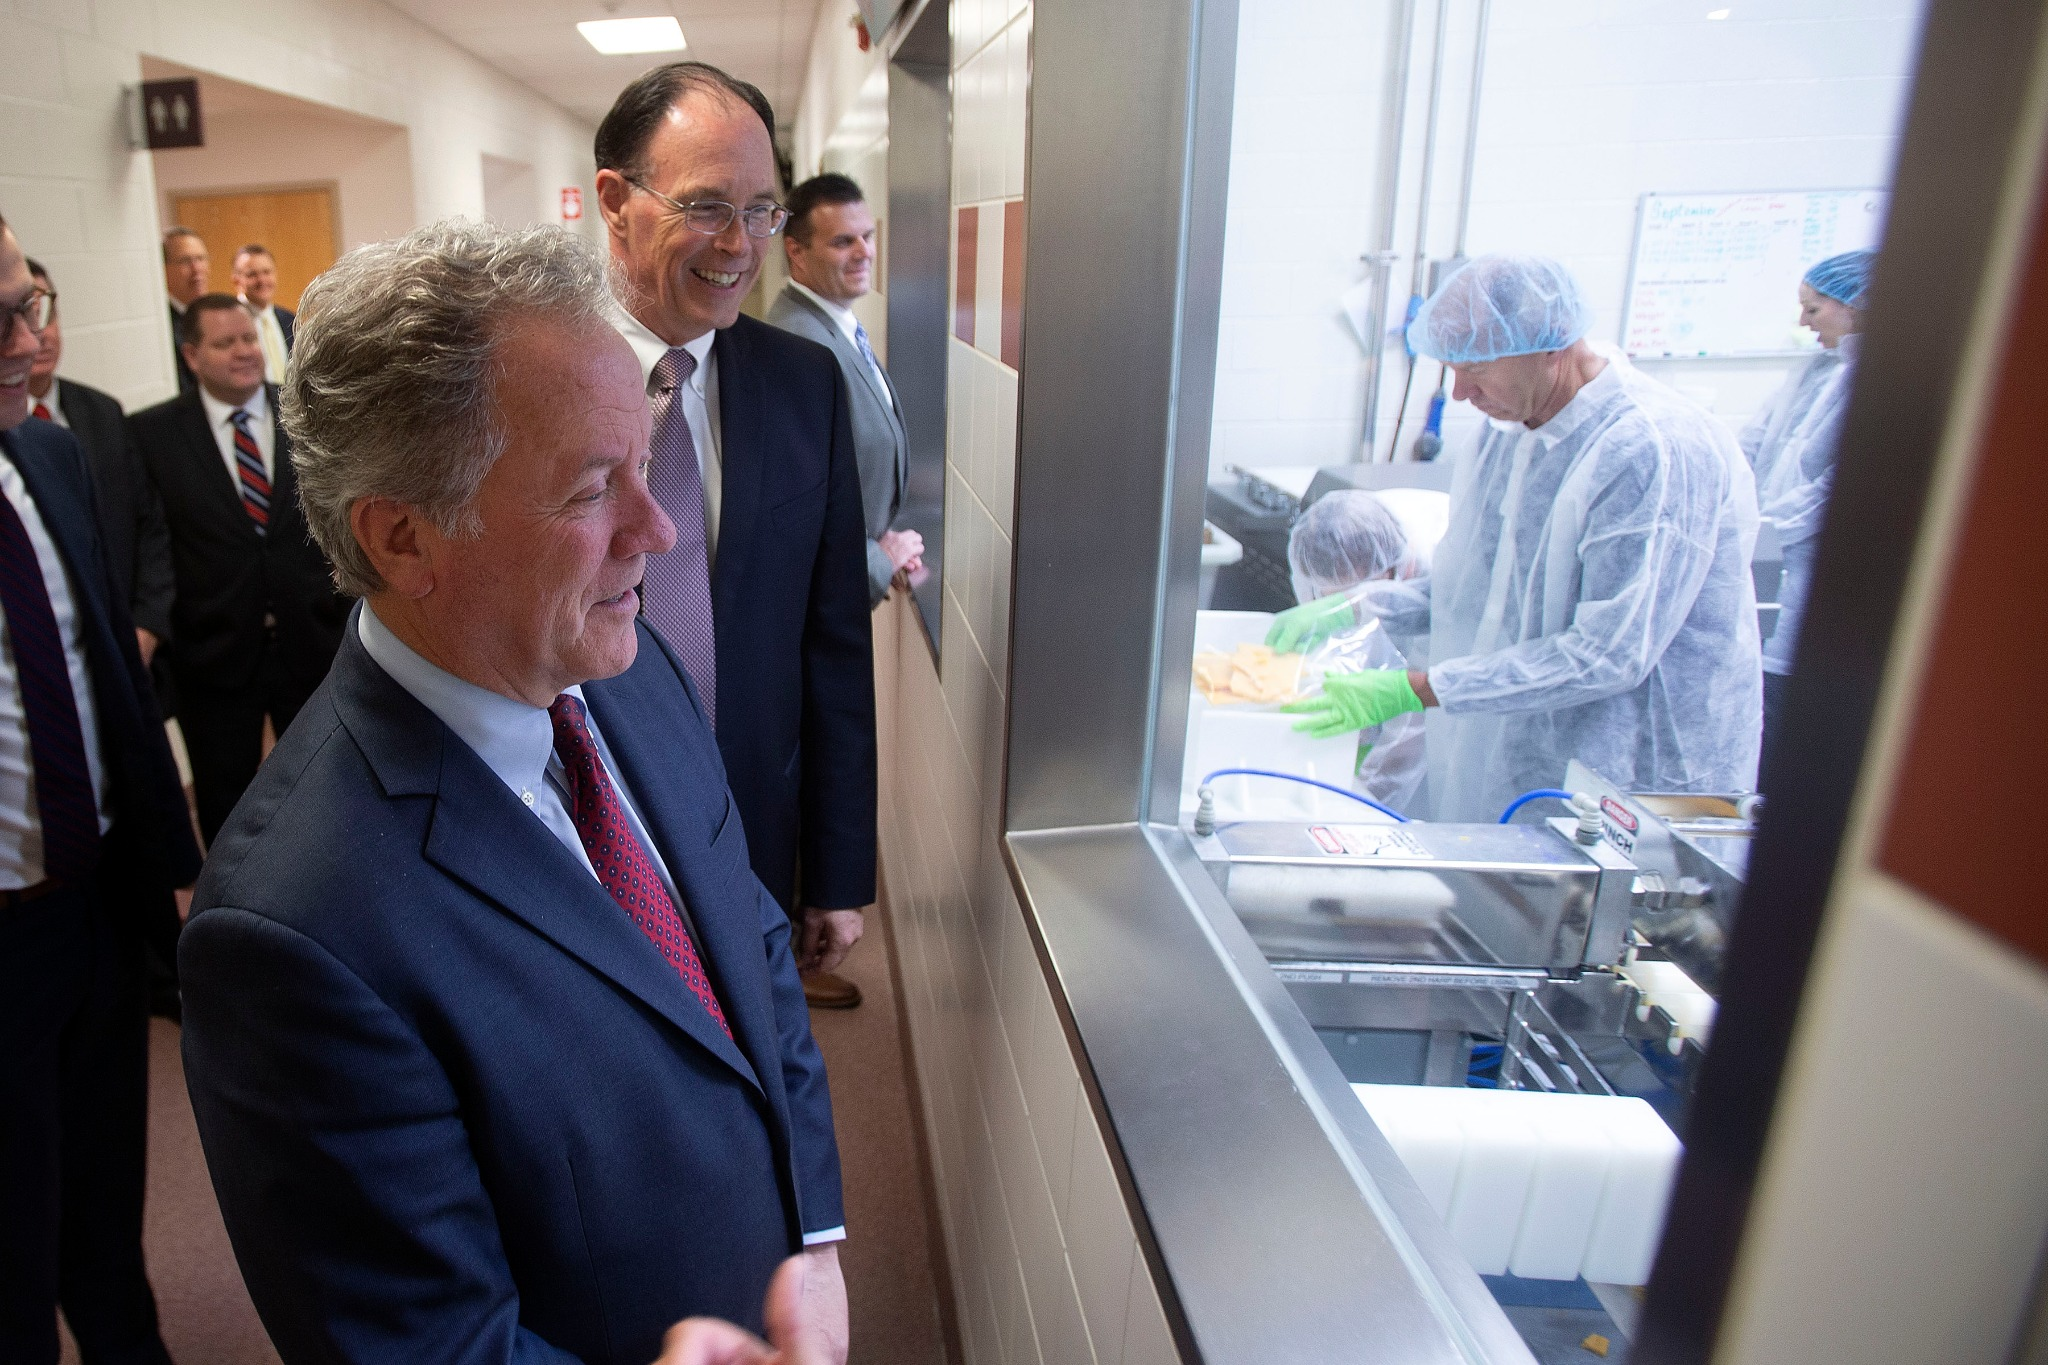 David Beasley, executive director of the United Nations World Food Programme, watches through a window in the dairy section of Welfare Square how cheese and other items are made during a tour on Monday, Sept. 30, 2019.